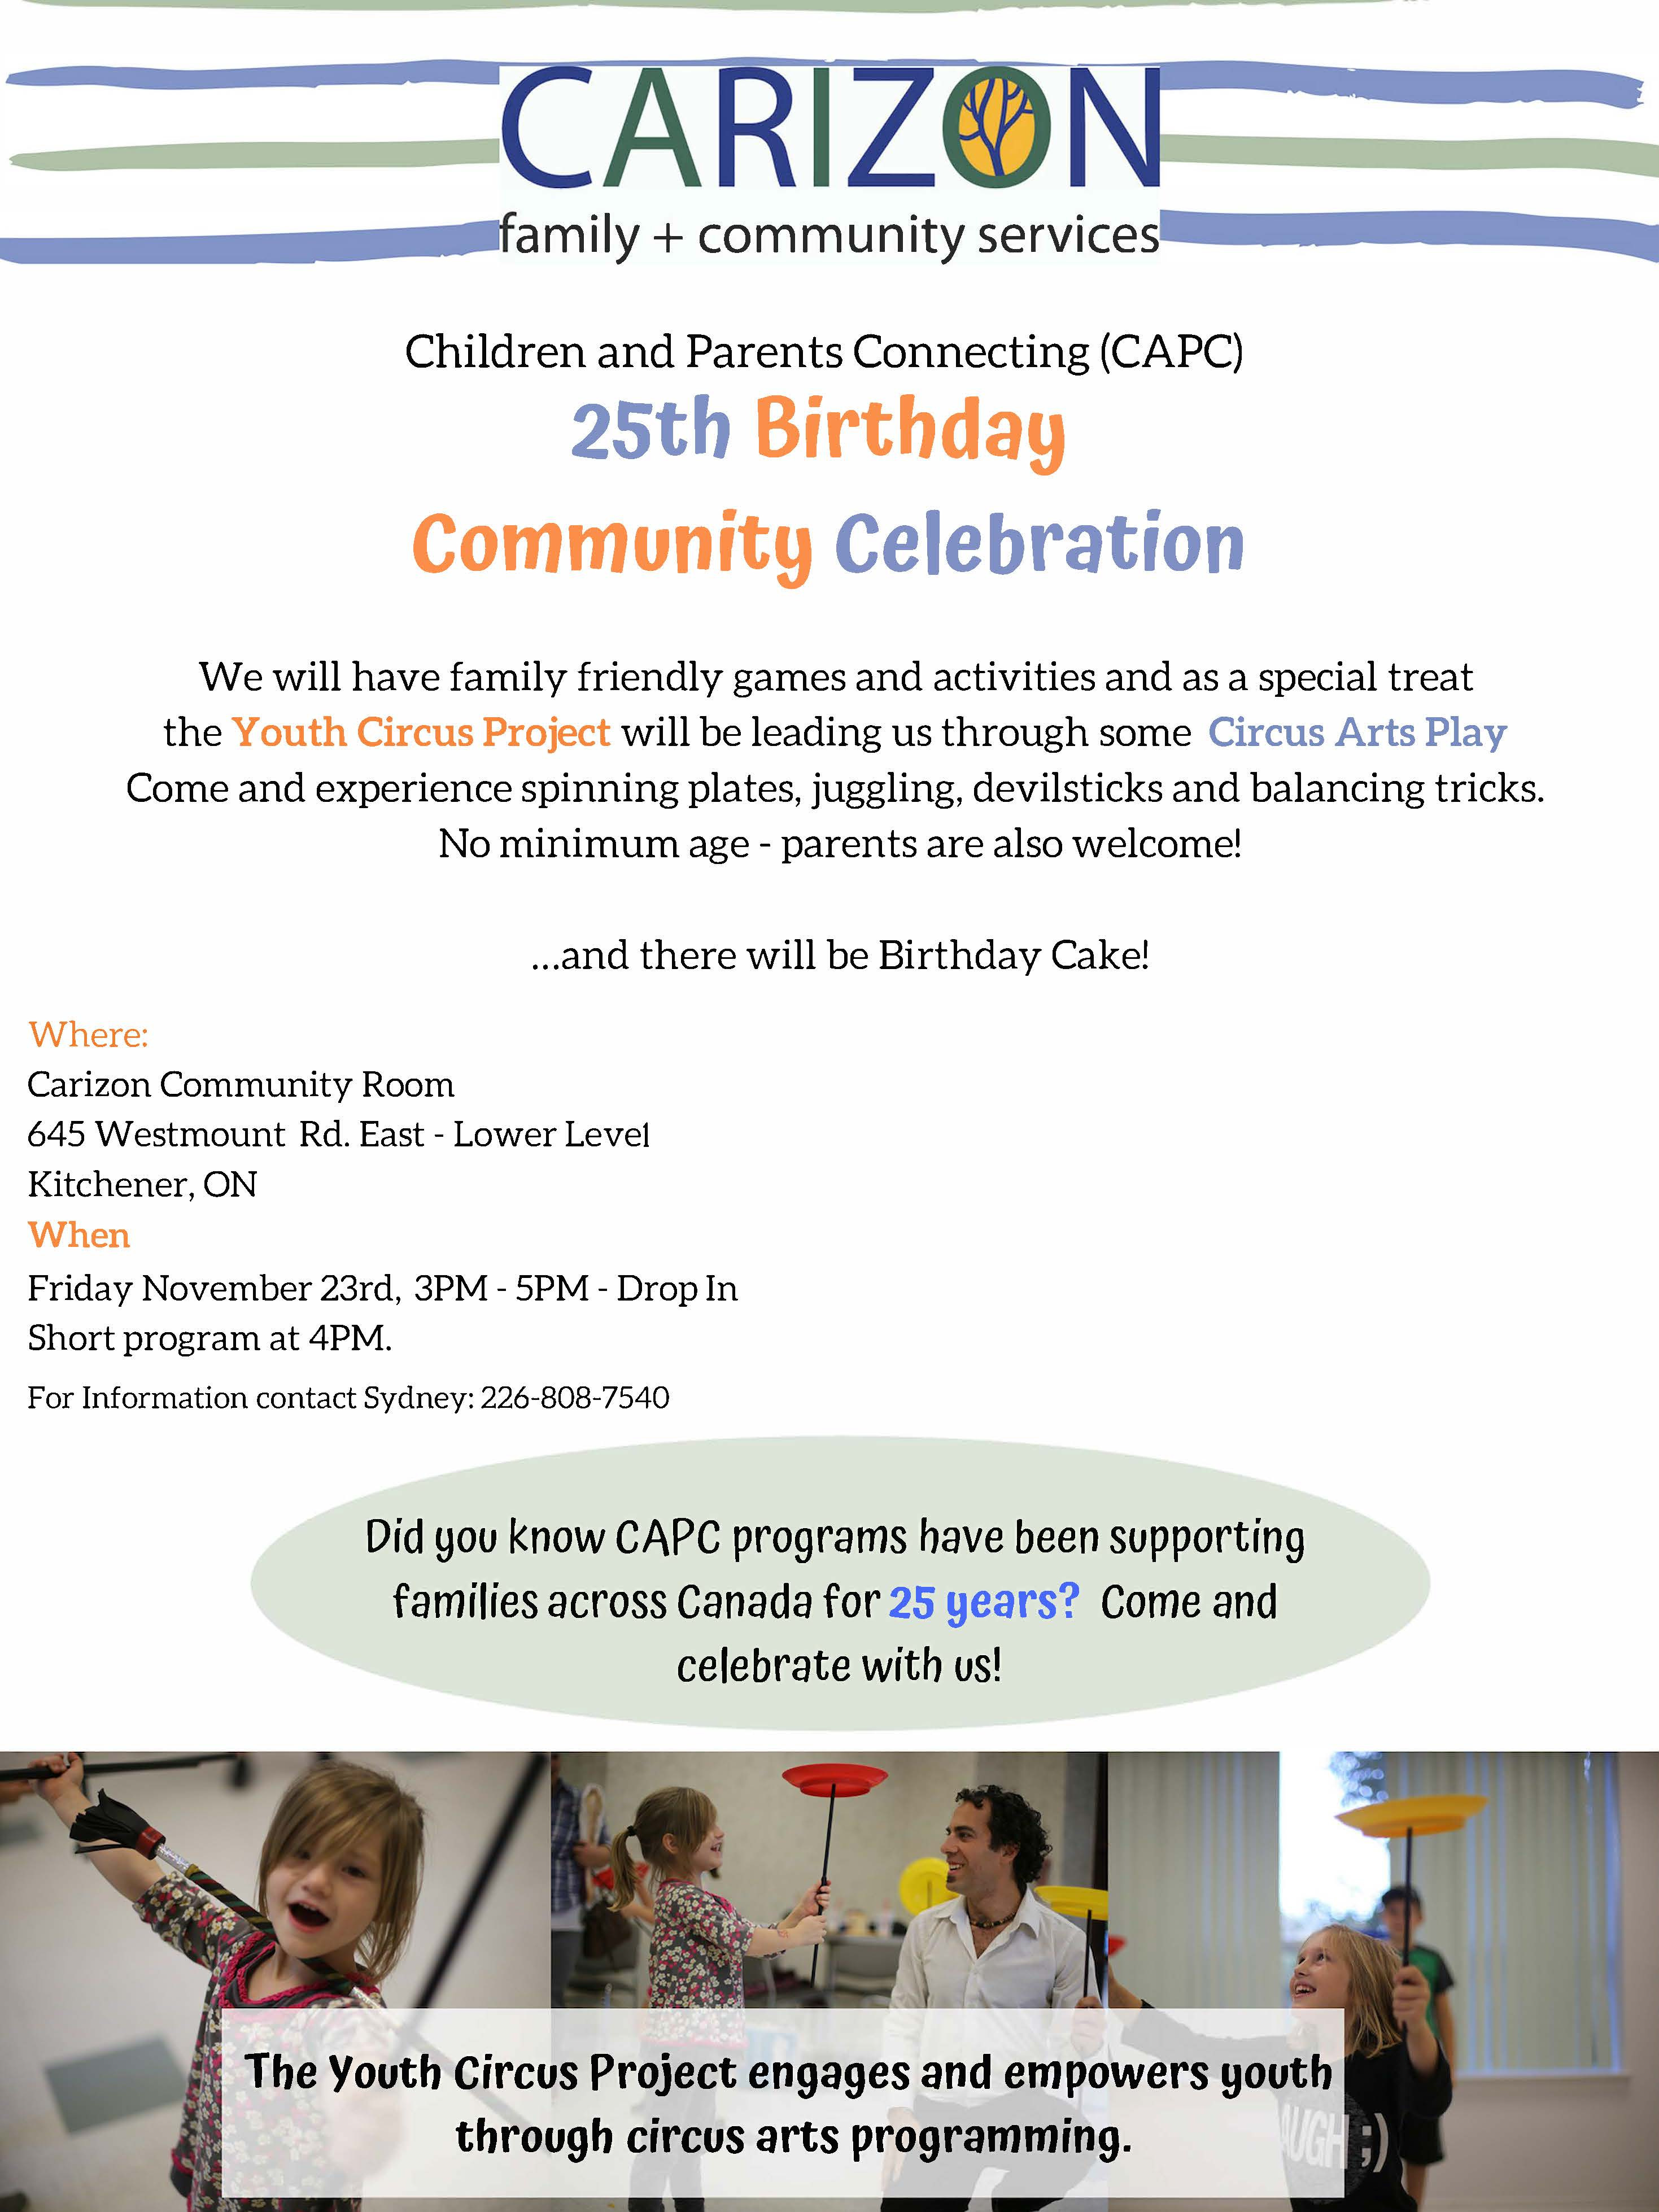 Carizon Celebrates 25th Birthday of Children and Parents Connecting (CAPC)